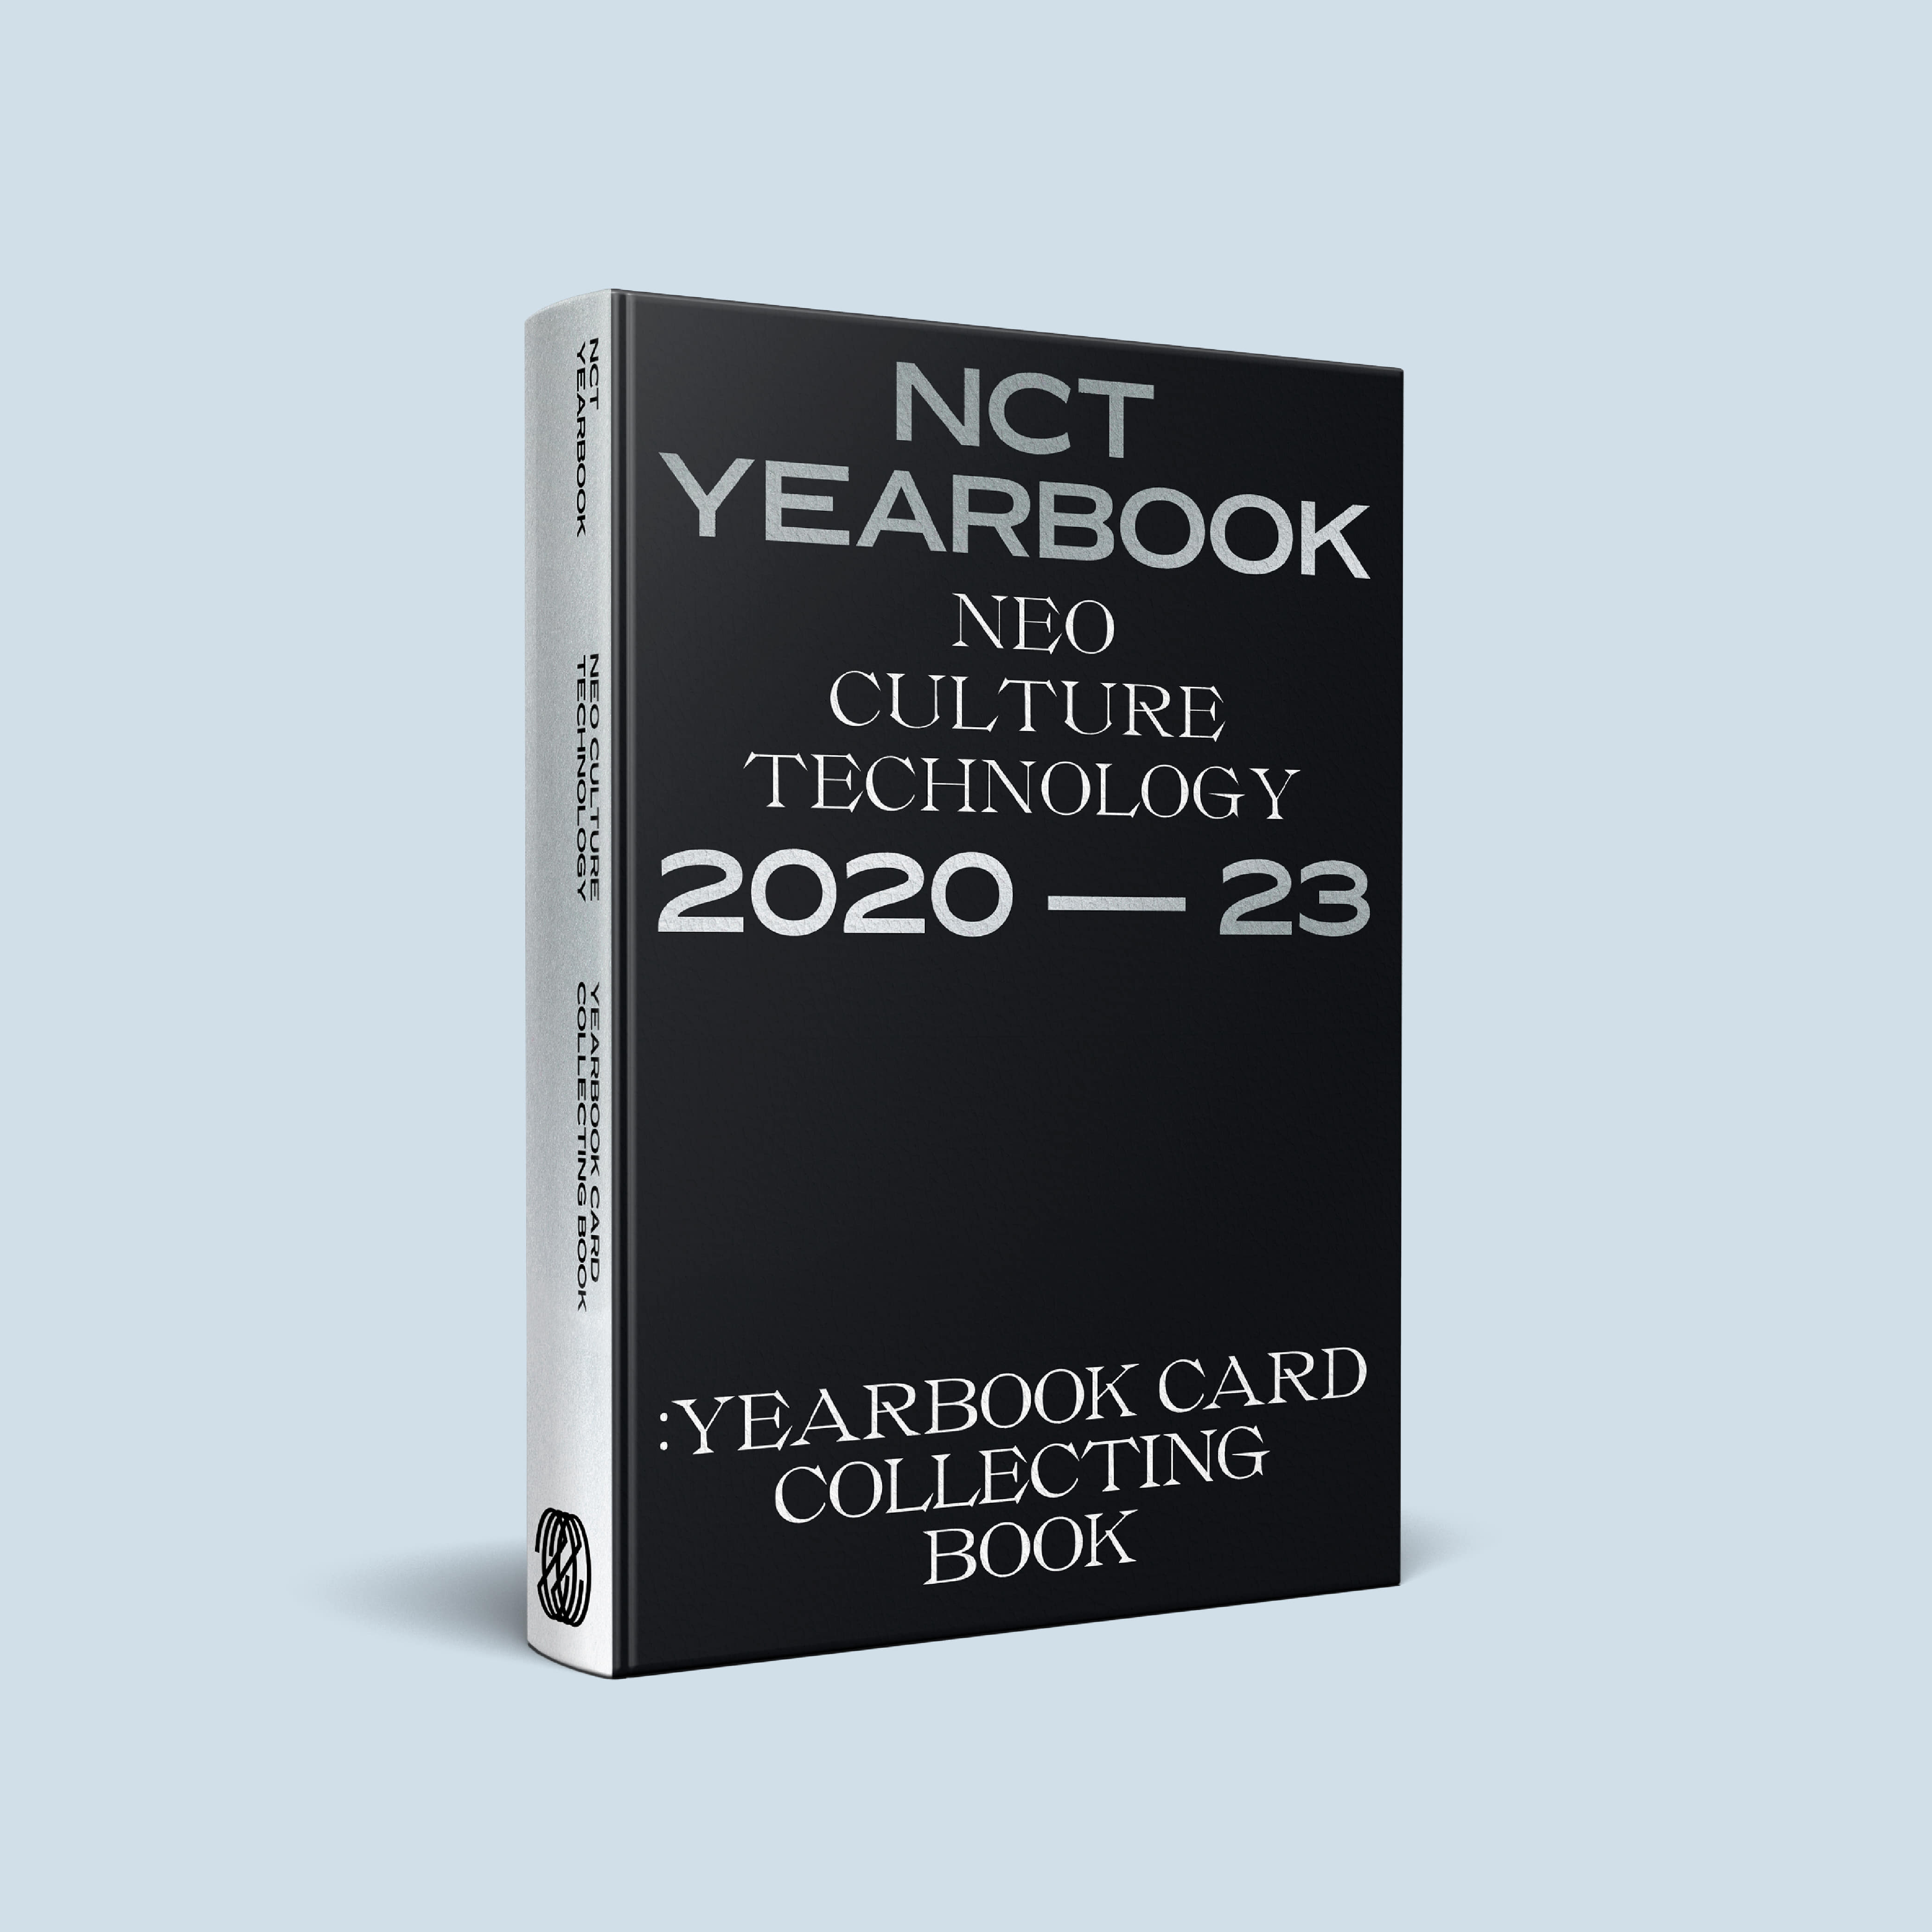 [PRE-ORDER] NCT YEARBOOK - Card Collecting Book케이팝스토어(kpop store)